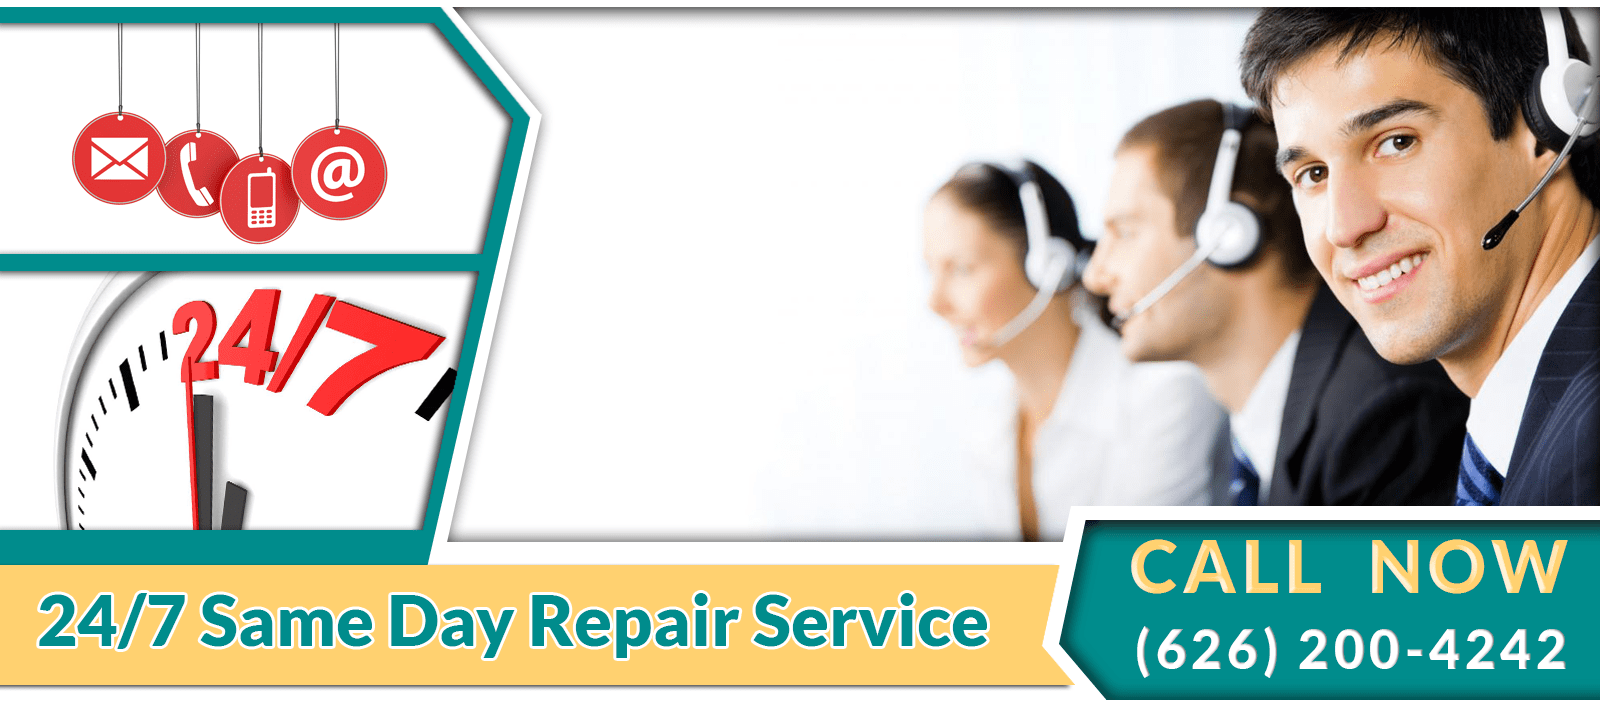 Contact Us ASAP Garage Door Repair Pasadena